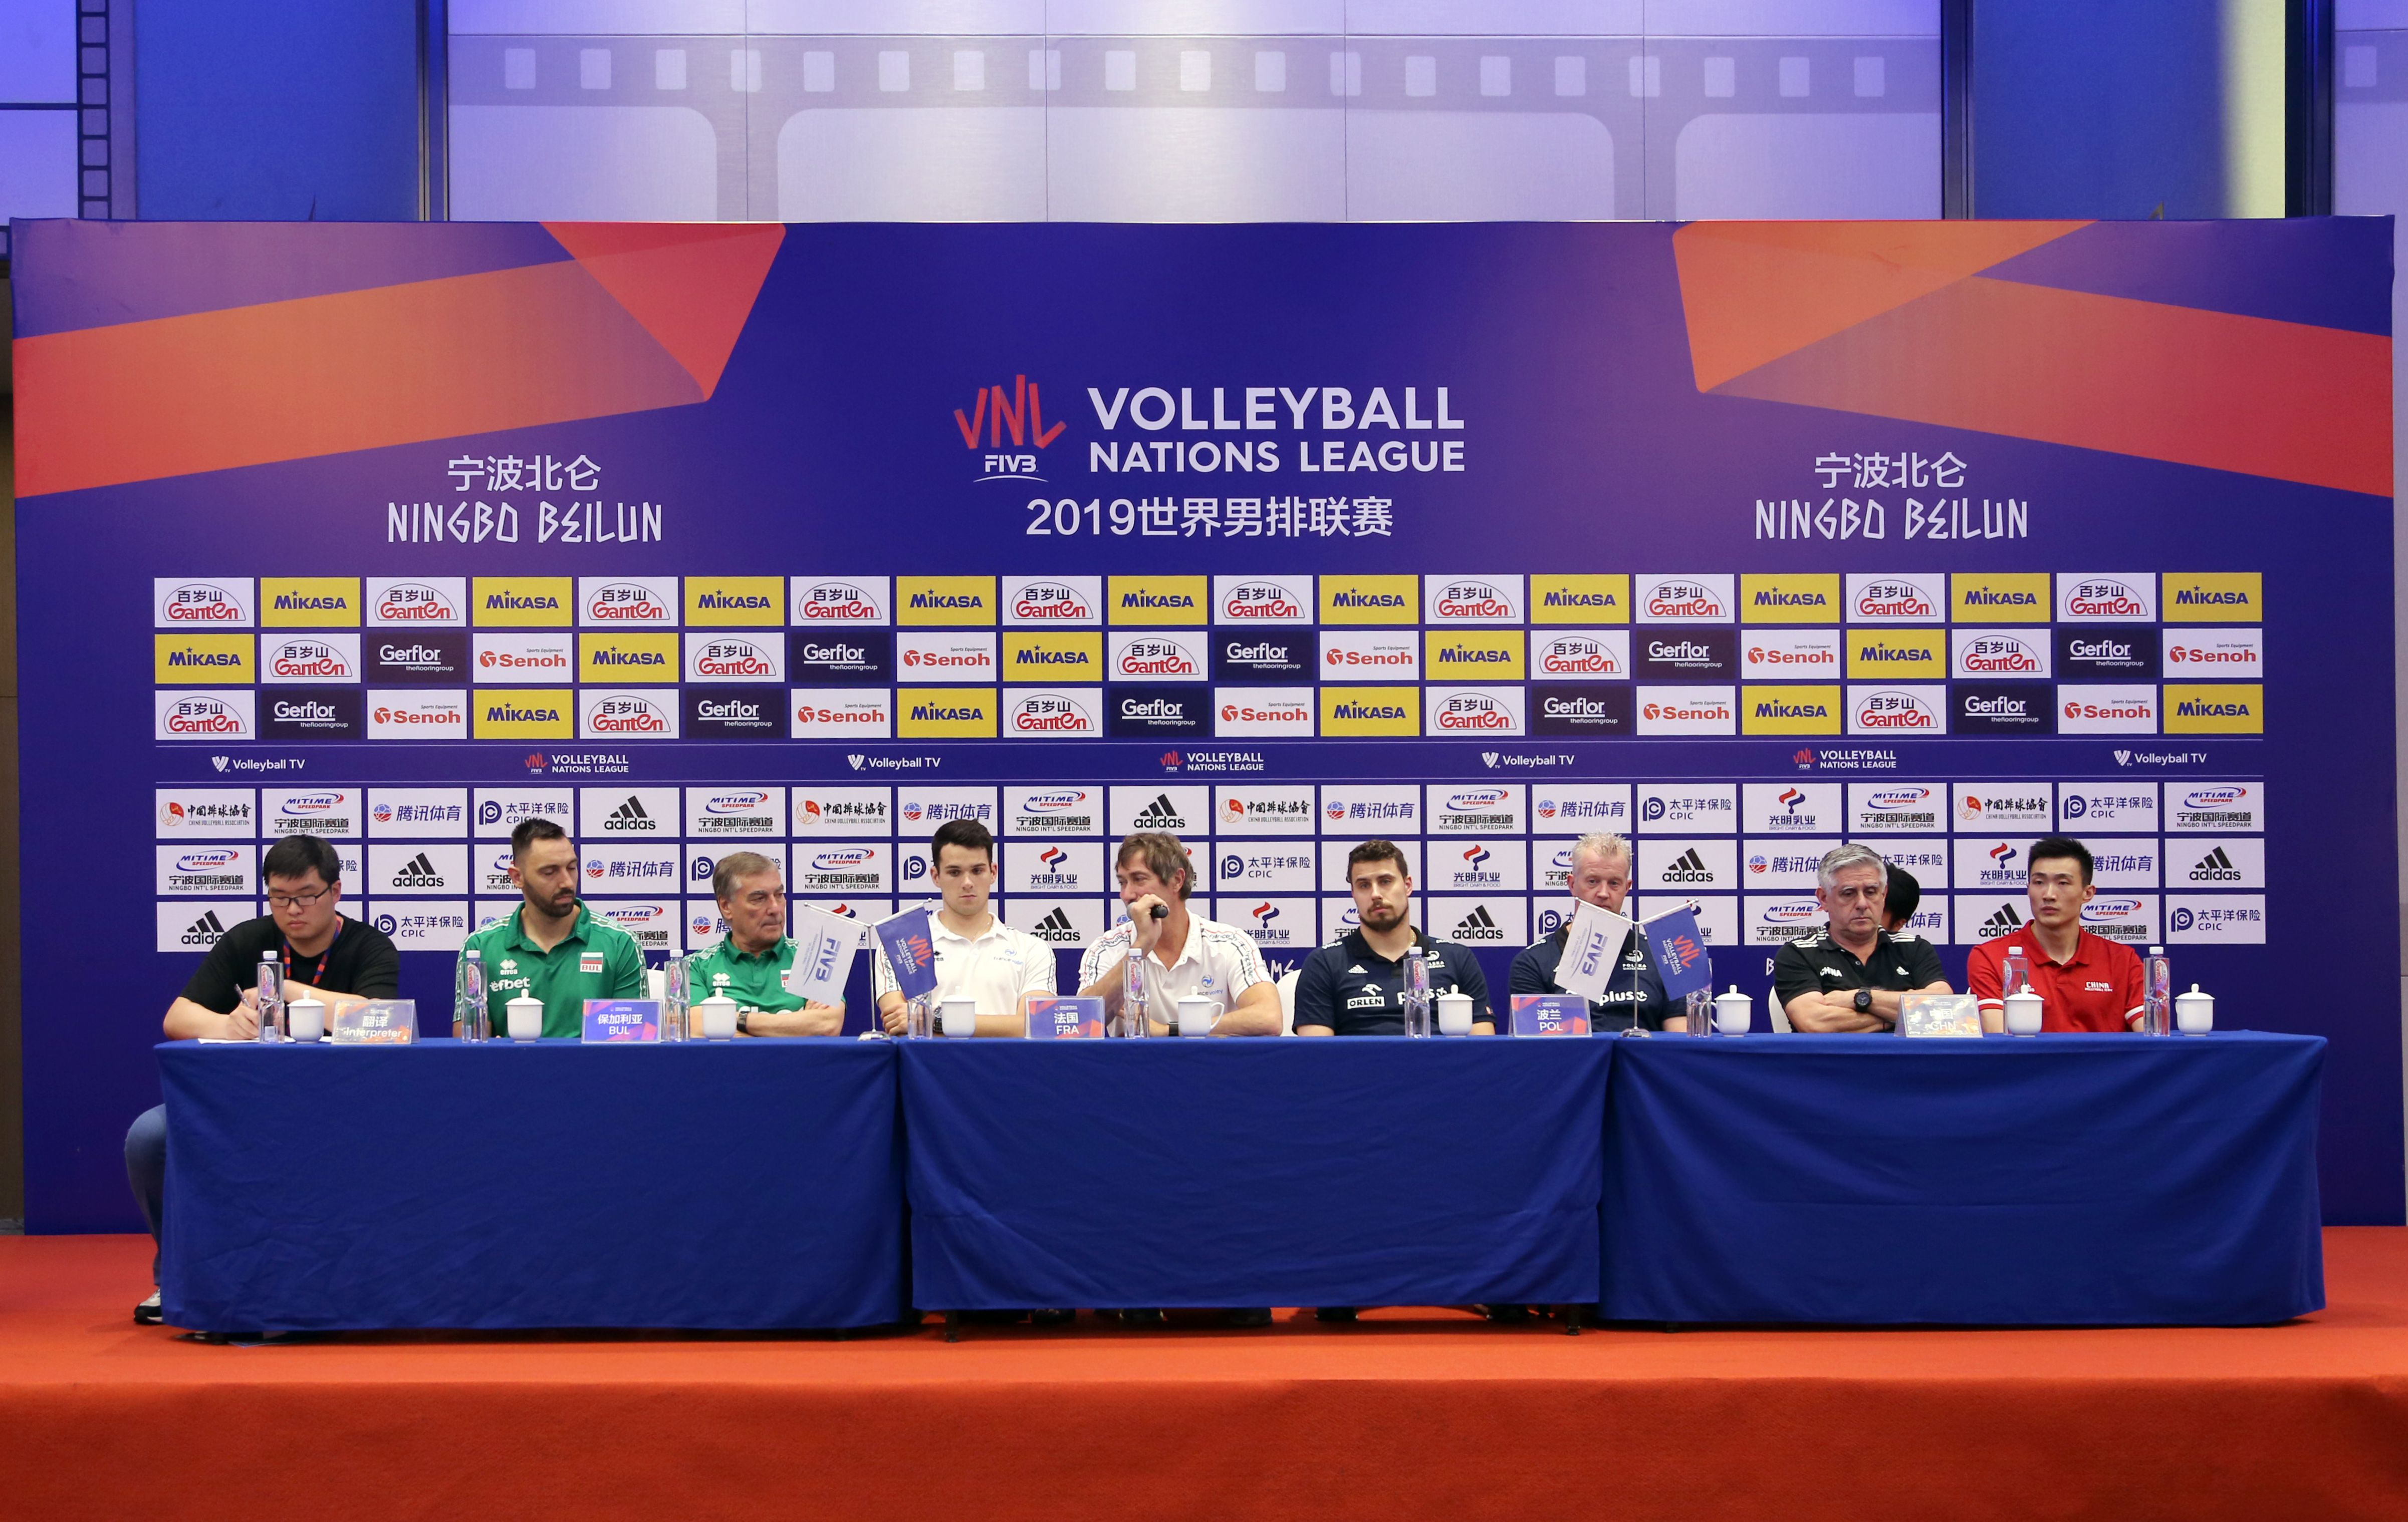 TEAMS SHARE EXPECTATIONS ON VOLLEYBALL NATIONS LEAGUE IN NINGBO